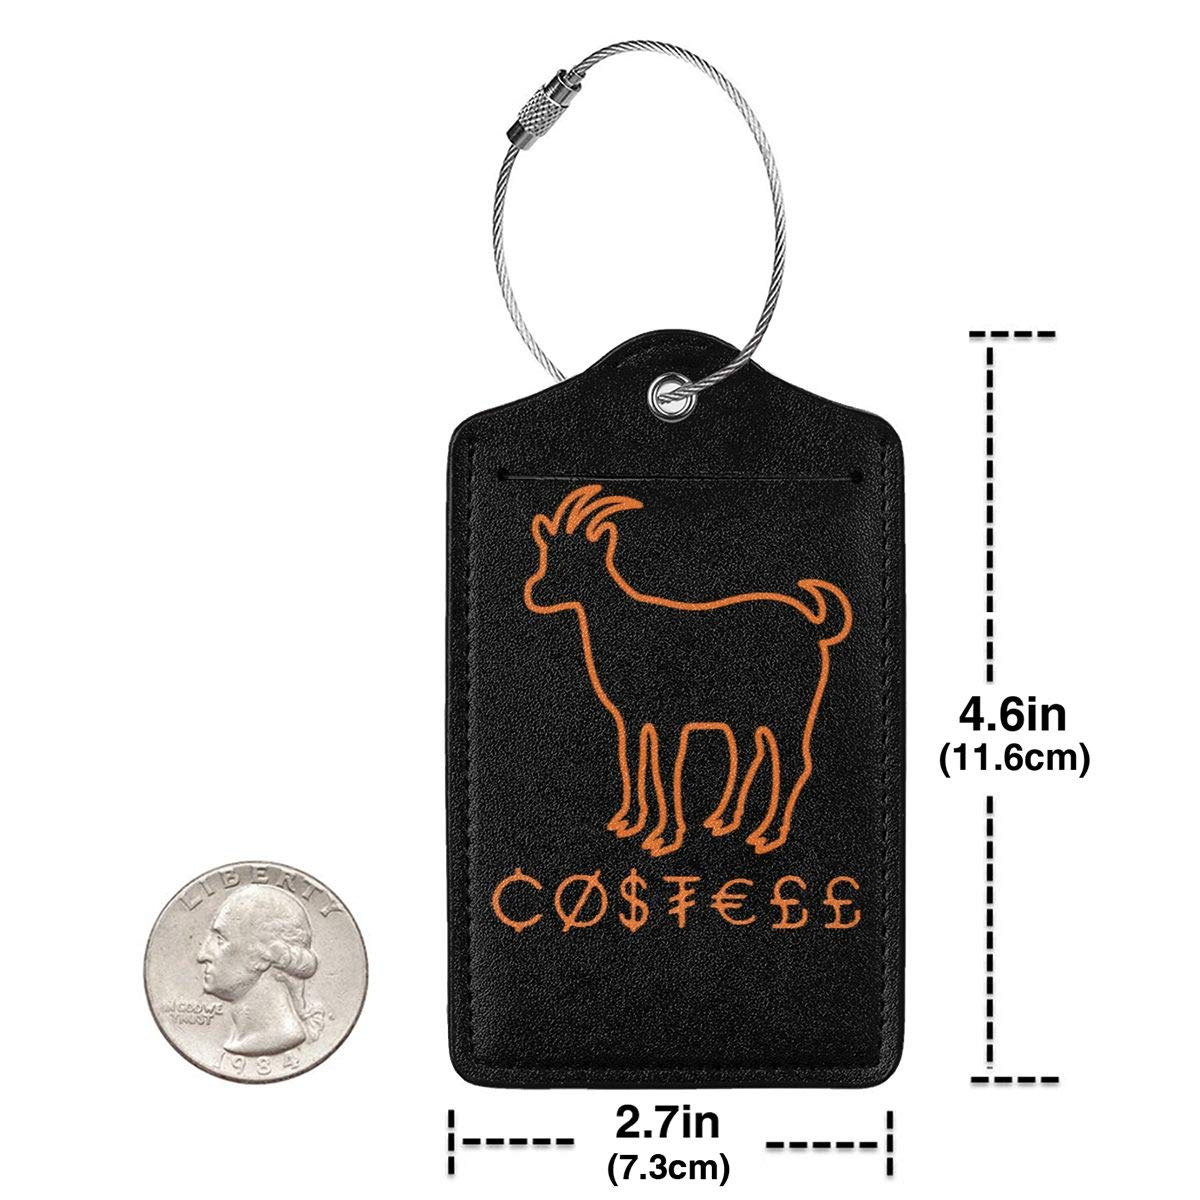 Erika Costell Sheep Leather Luggage Tag Travel ID Label For Baggage Suitcase